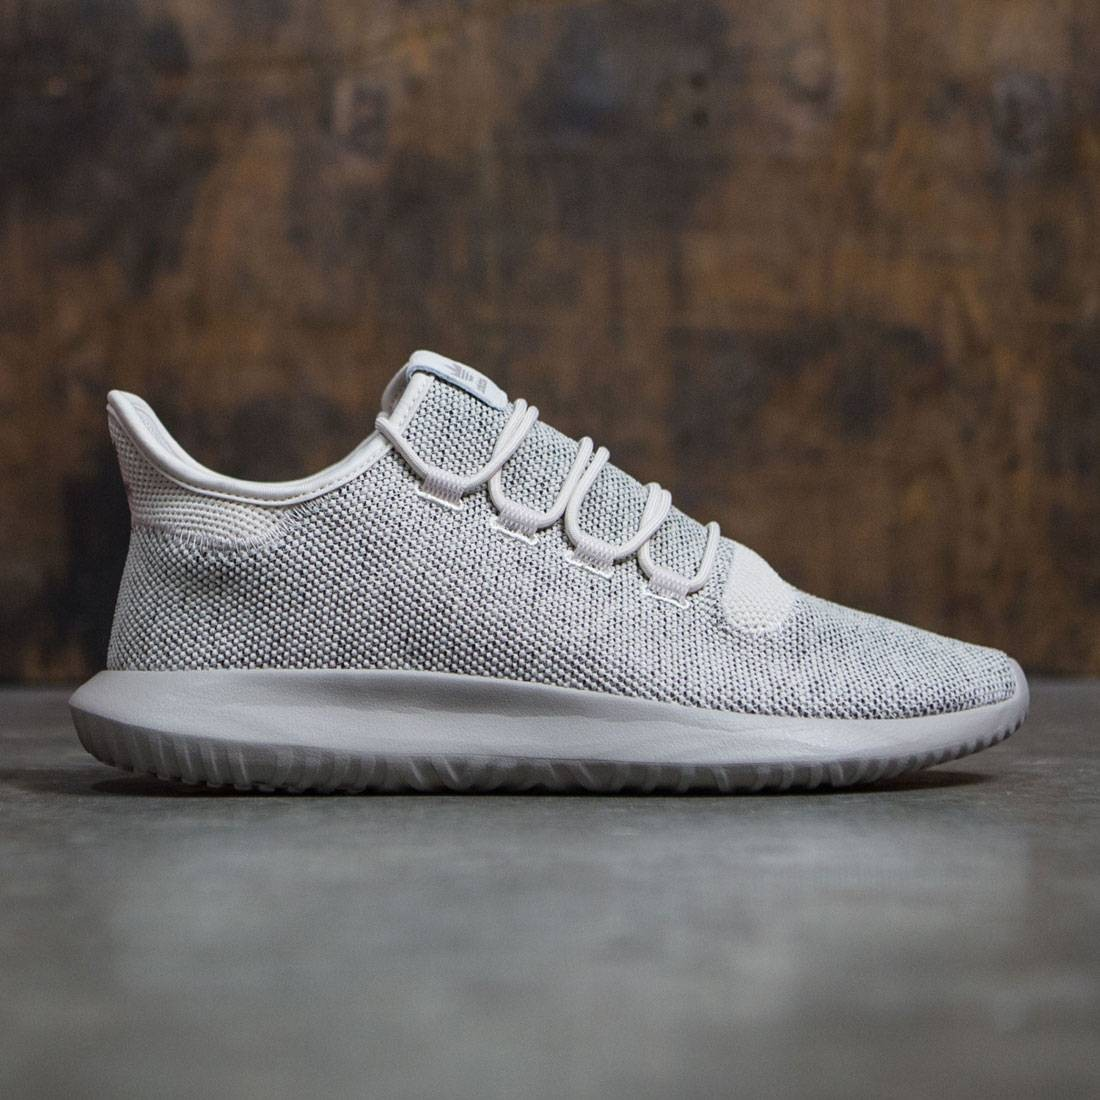 Adidas Tubular Radial Primeknit Shoes White adidas UK